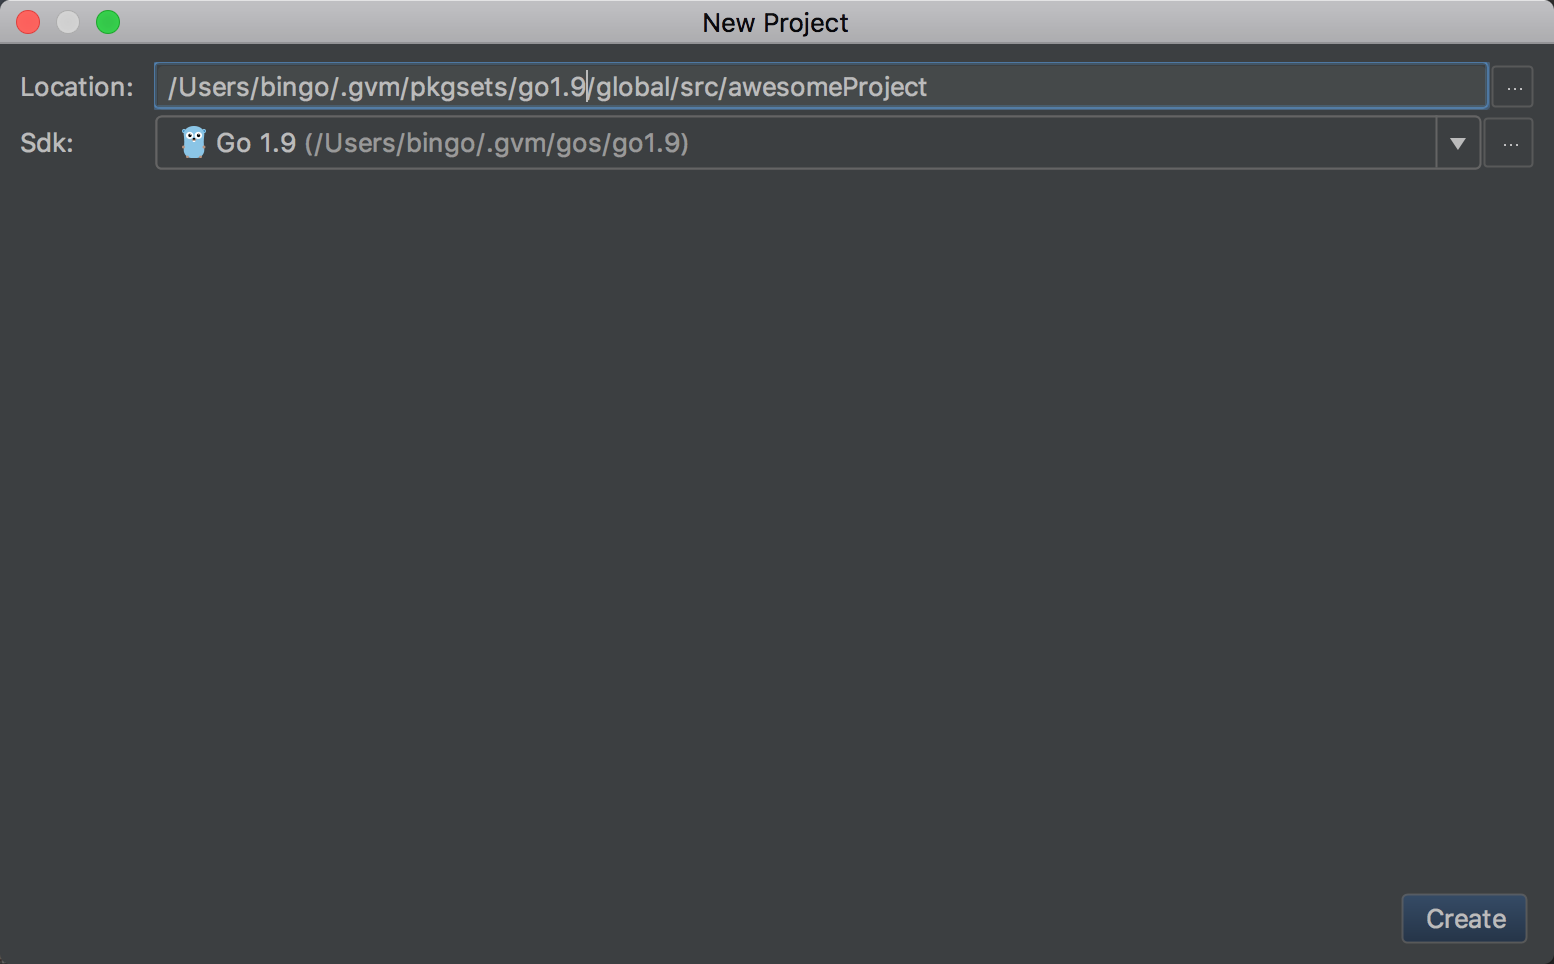 gogland-new-project.png